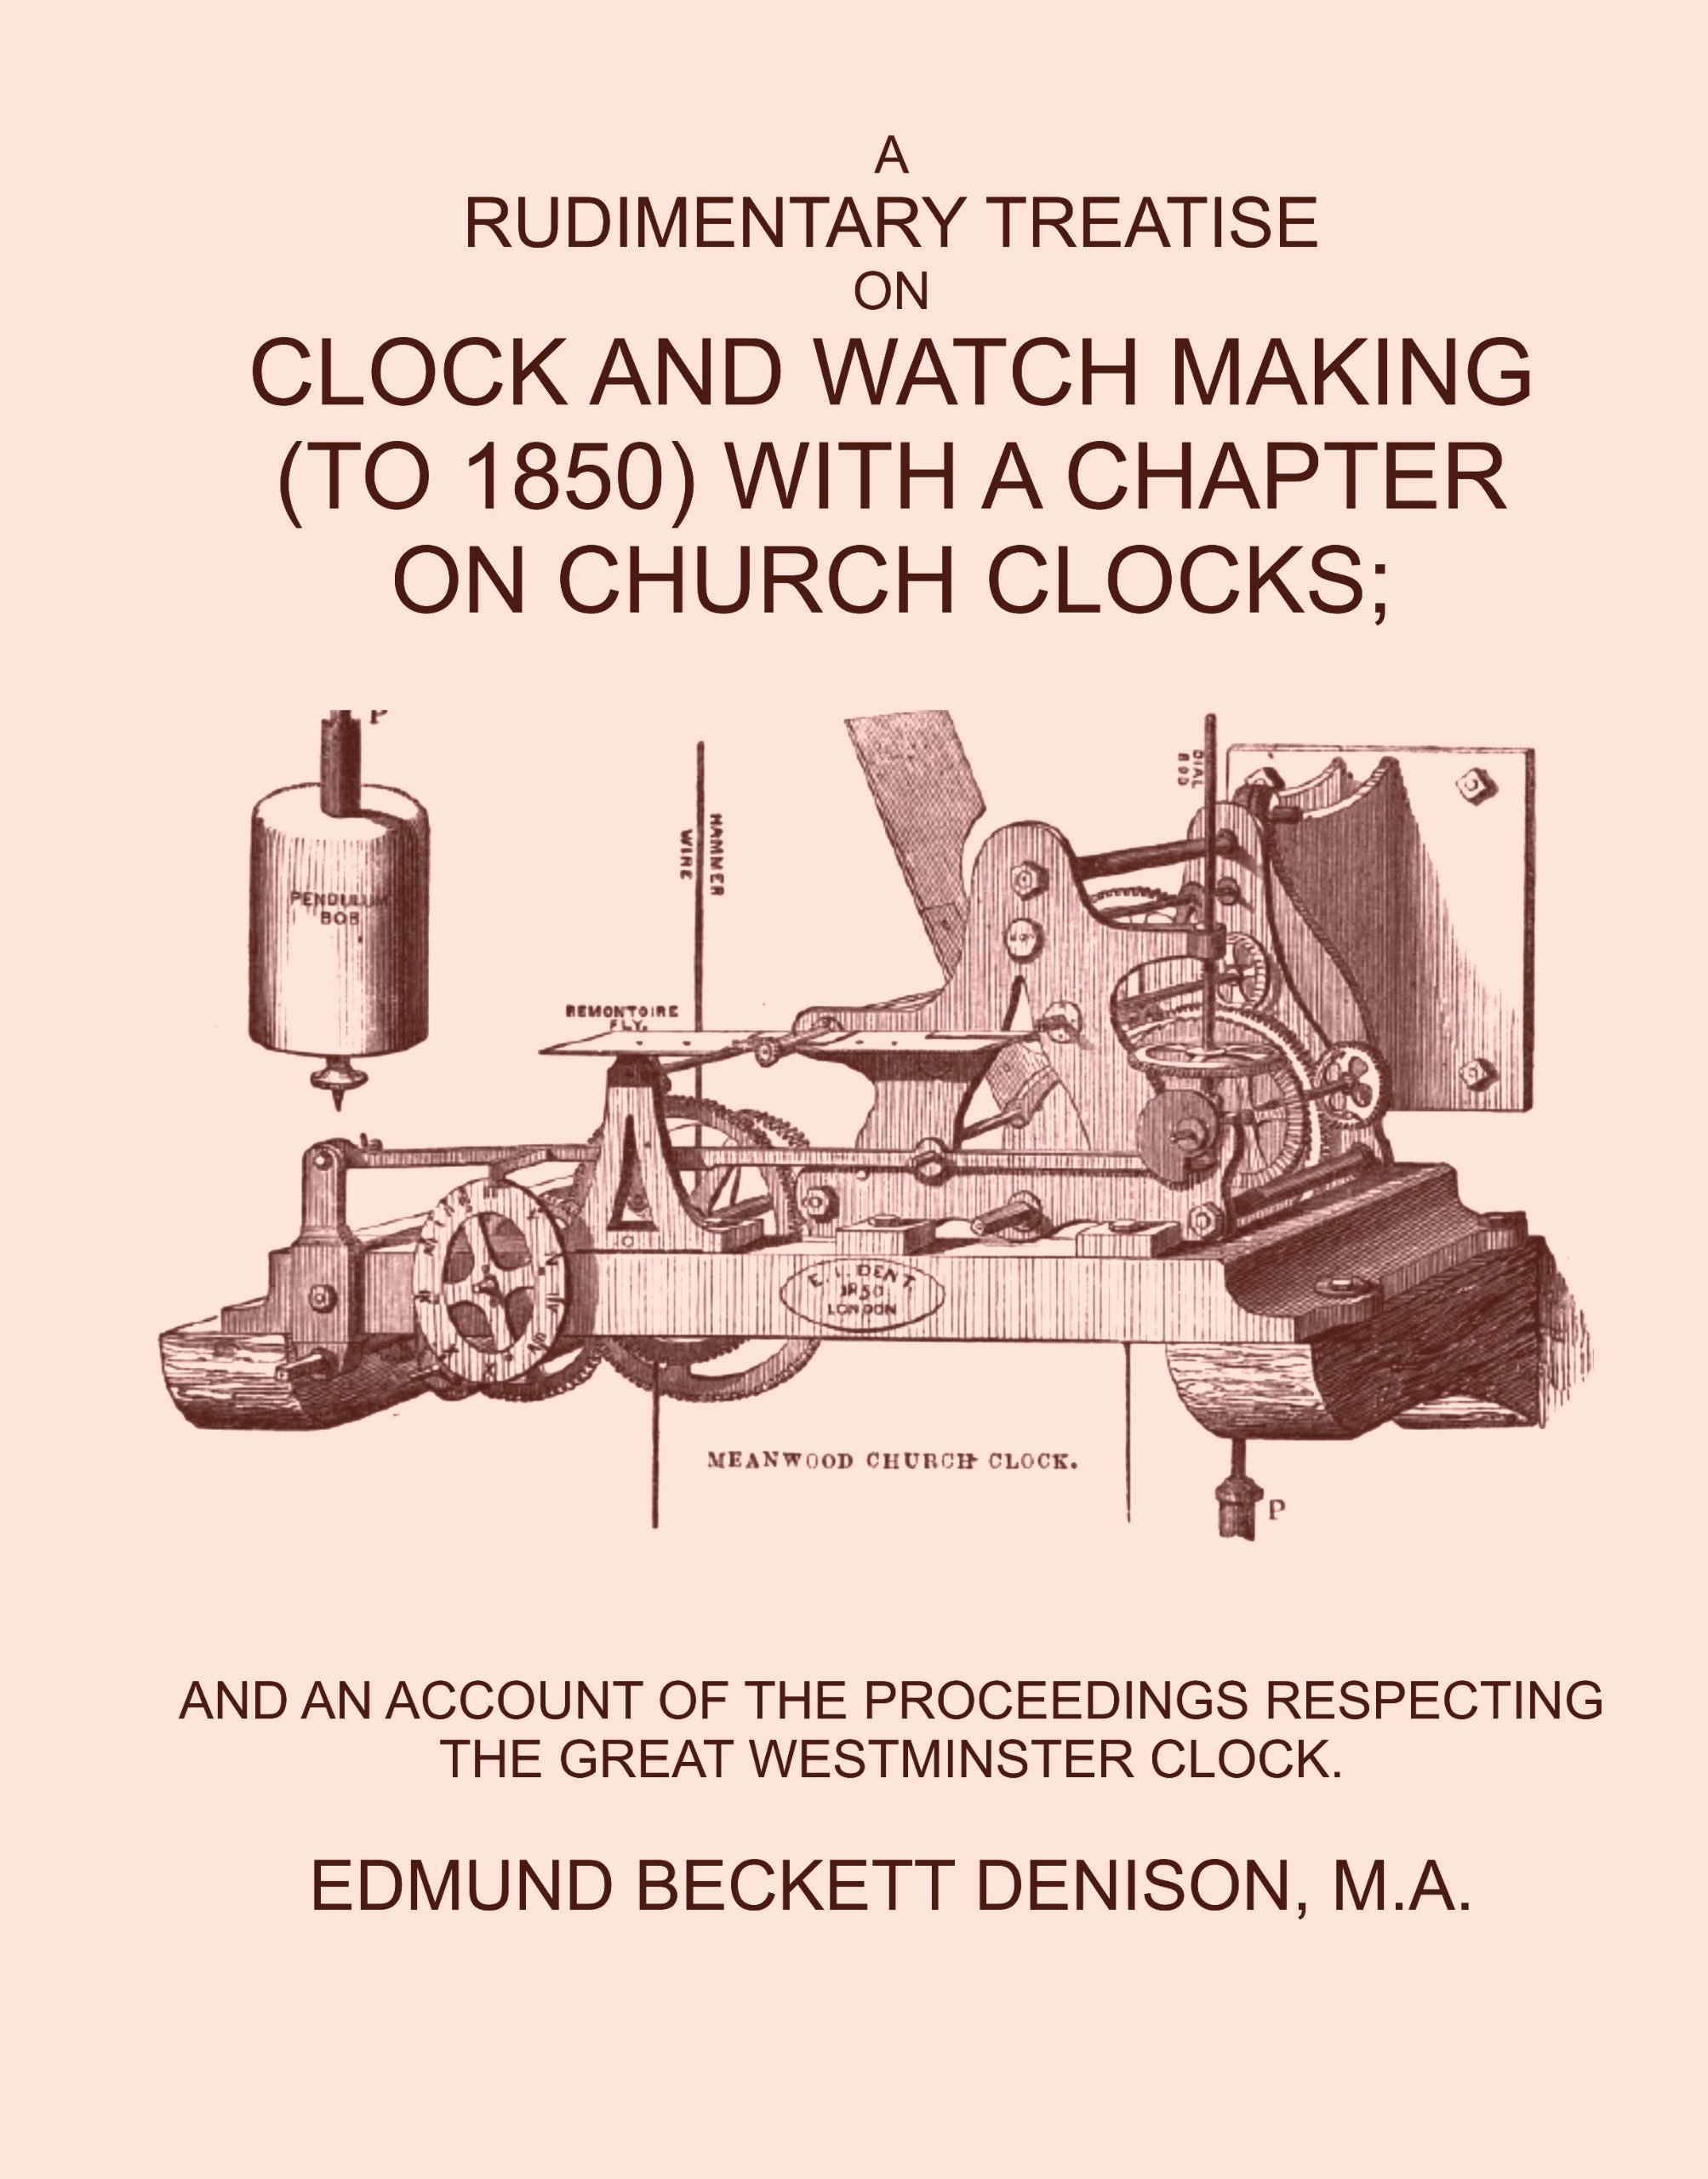 A RUDIMENTARY TREATISE ON CLOCK AND WATCH (TO 1850) MAKING WITH A CHAPTER ON CHURCH CLOCKS; AND AN ACCOUNT OF THE PROCEEDINGS RESPECTING THE GREAT WESTMINSTER CLOCK. by EDMUND BECKETT DENISON, M.A. (Student Facsimile Reprint) pdf